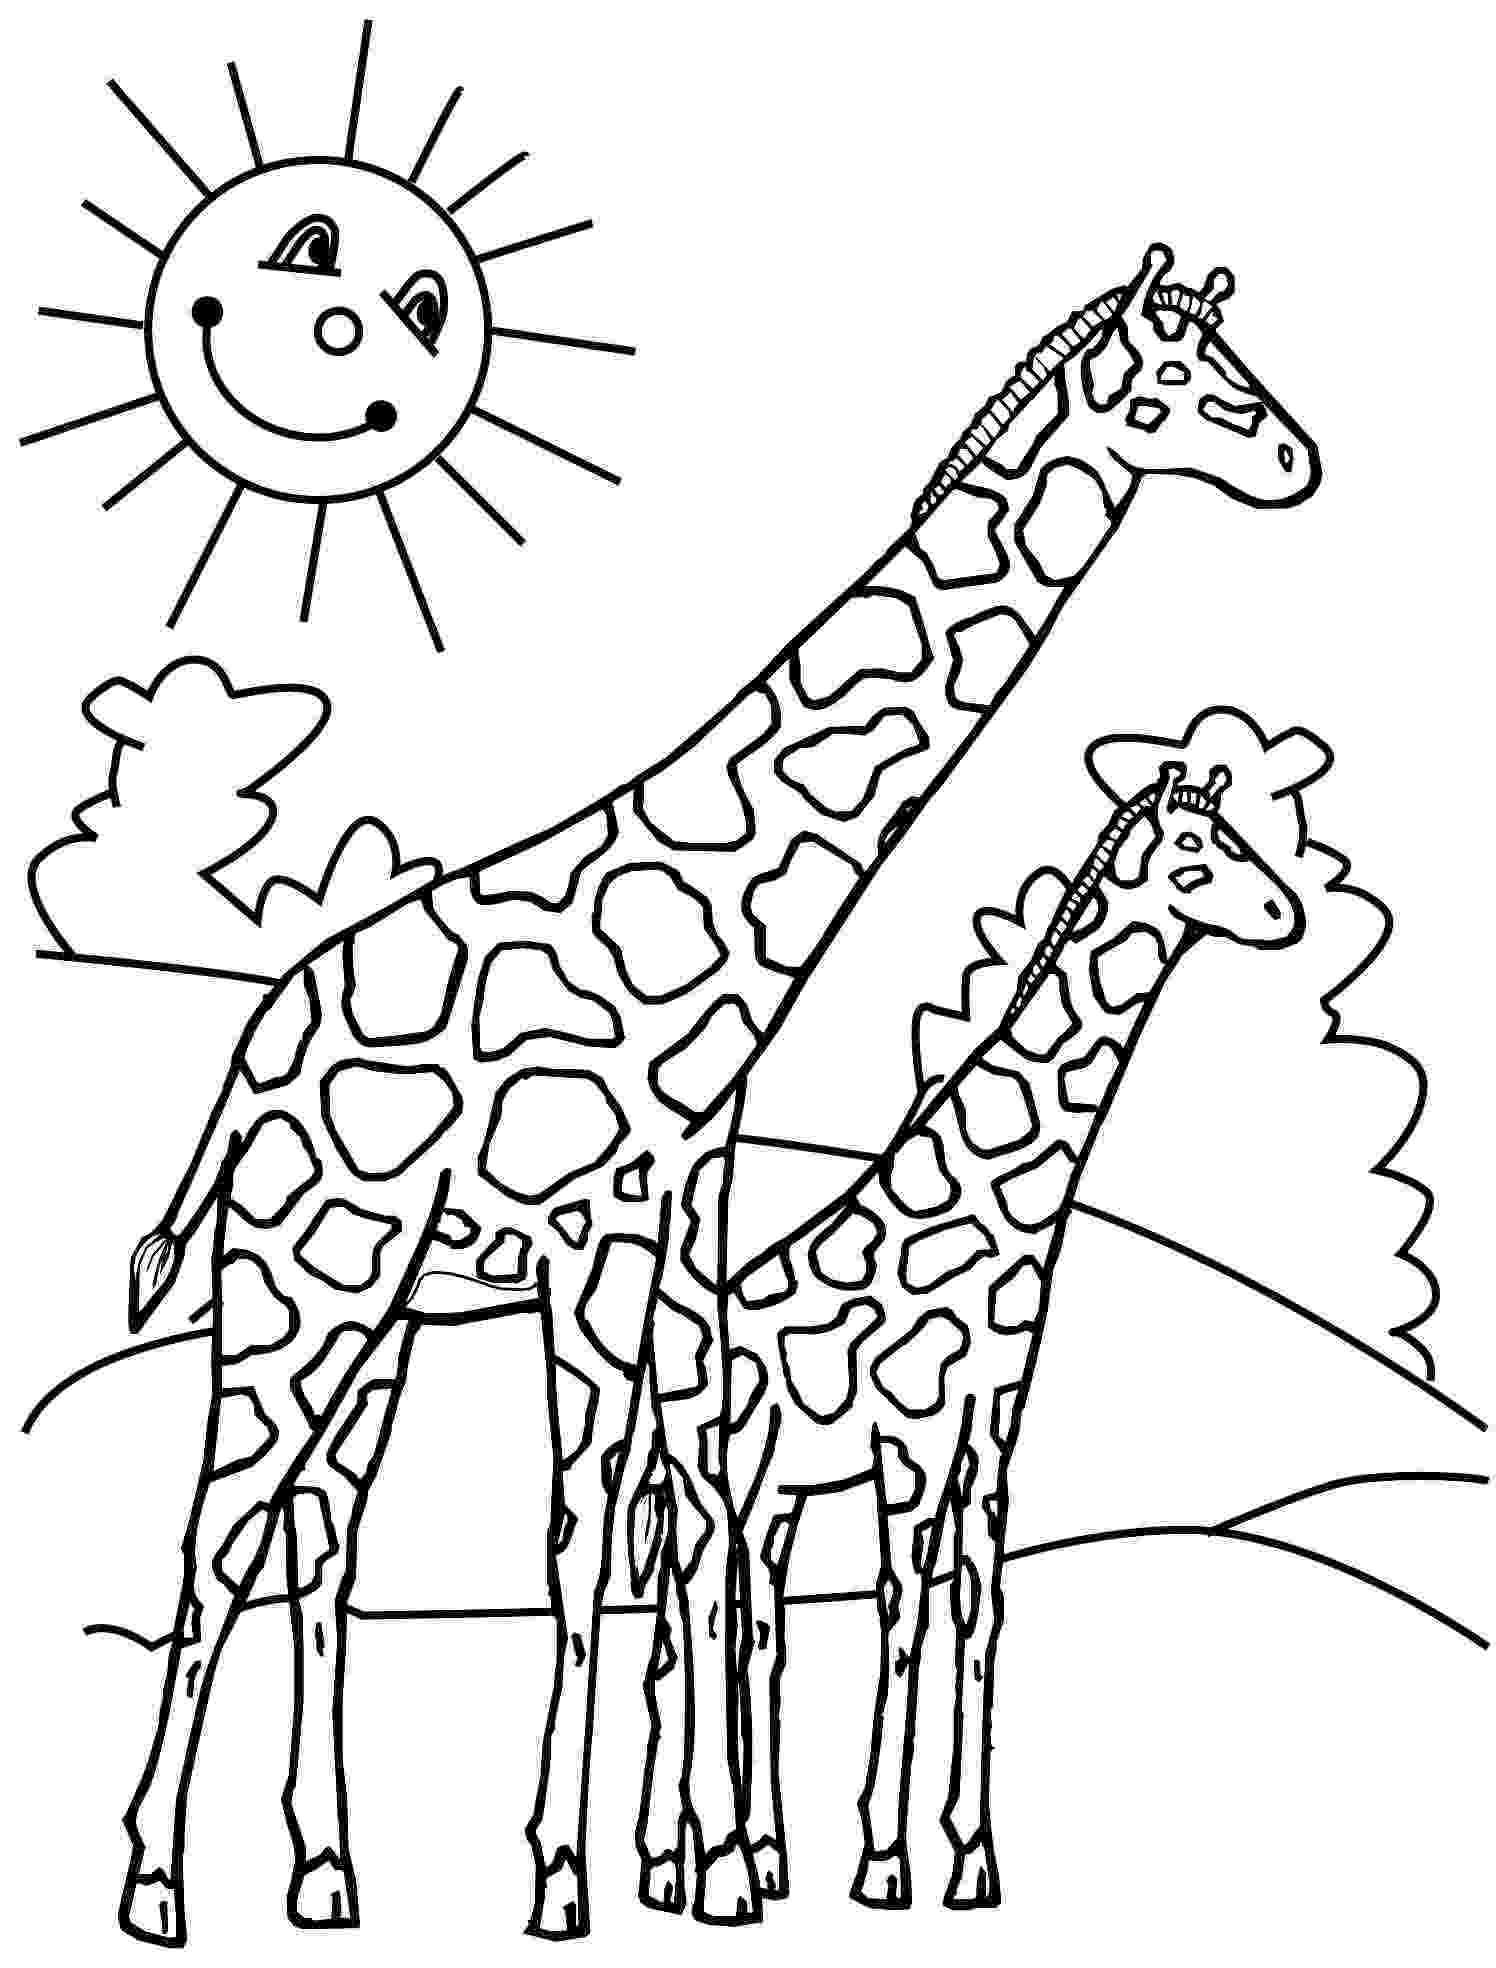 giraffe to color free printable giraffe coloring pages for kids to giraffe color